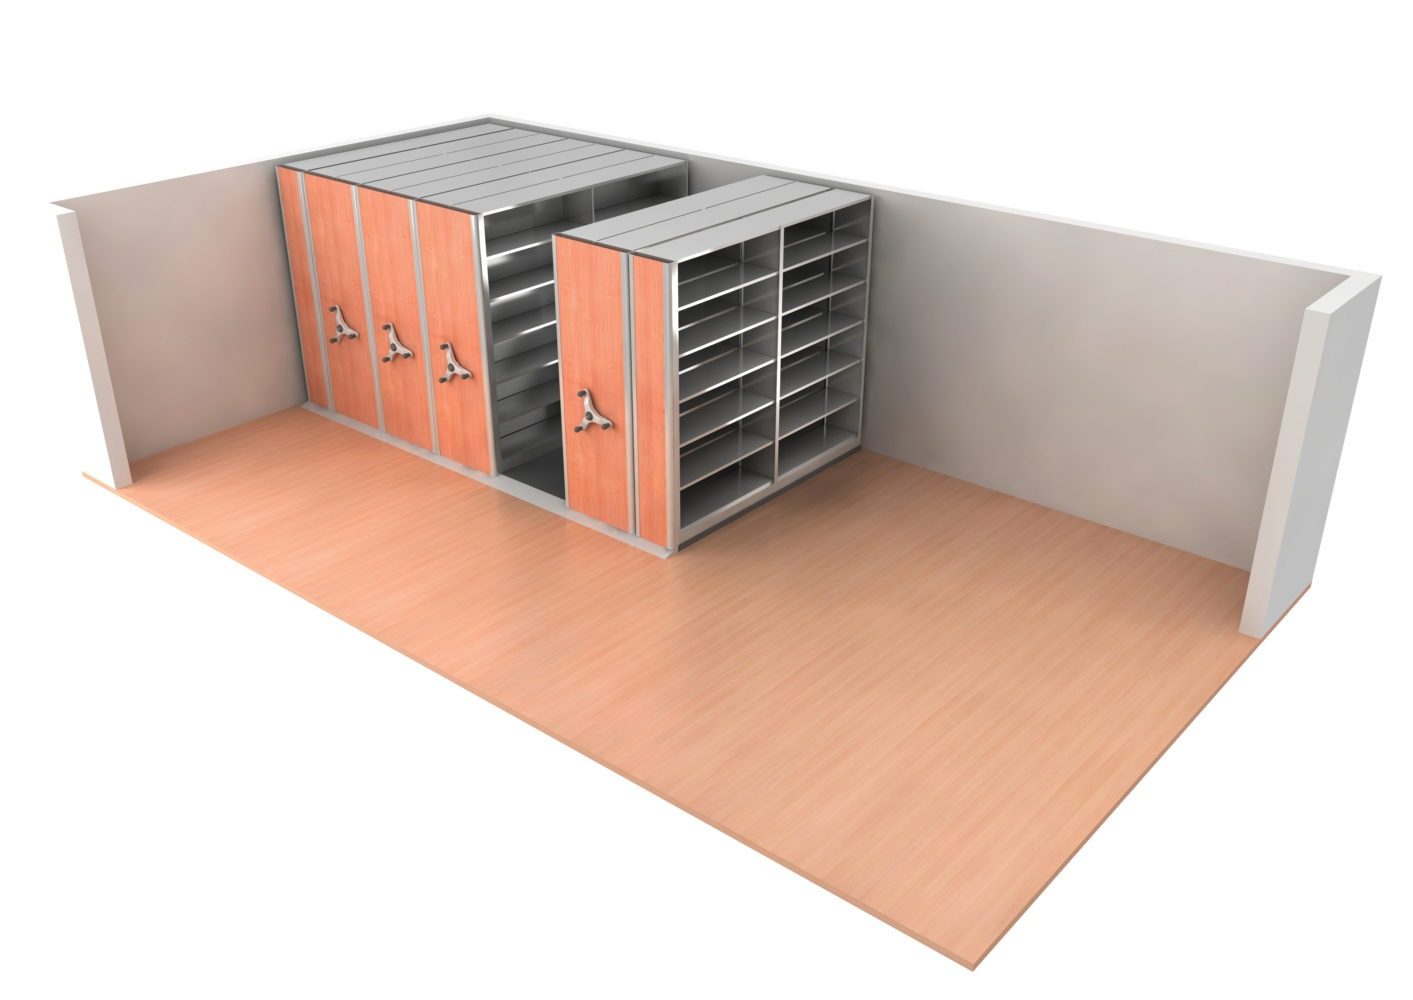 Compact storage systems can be installed in any facilities that require better utilisation of storage space.